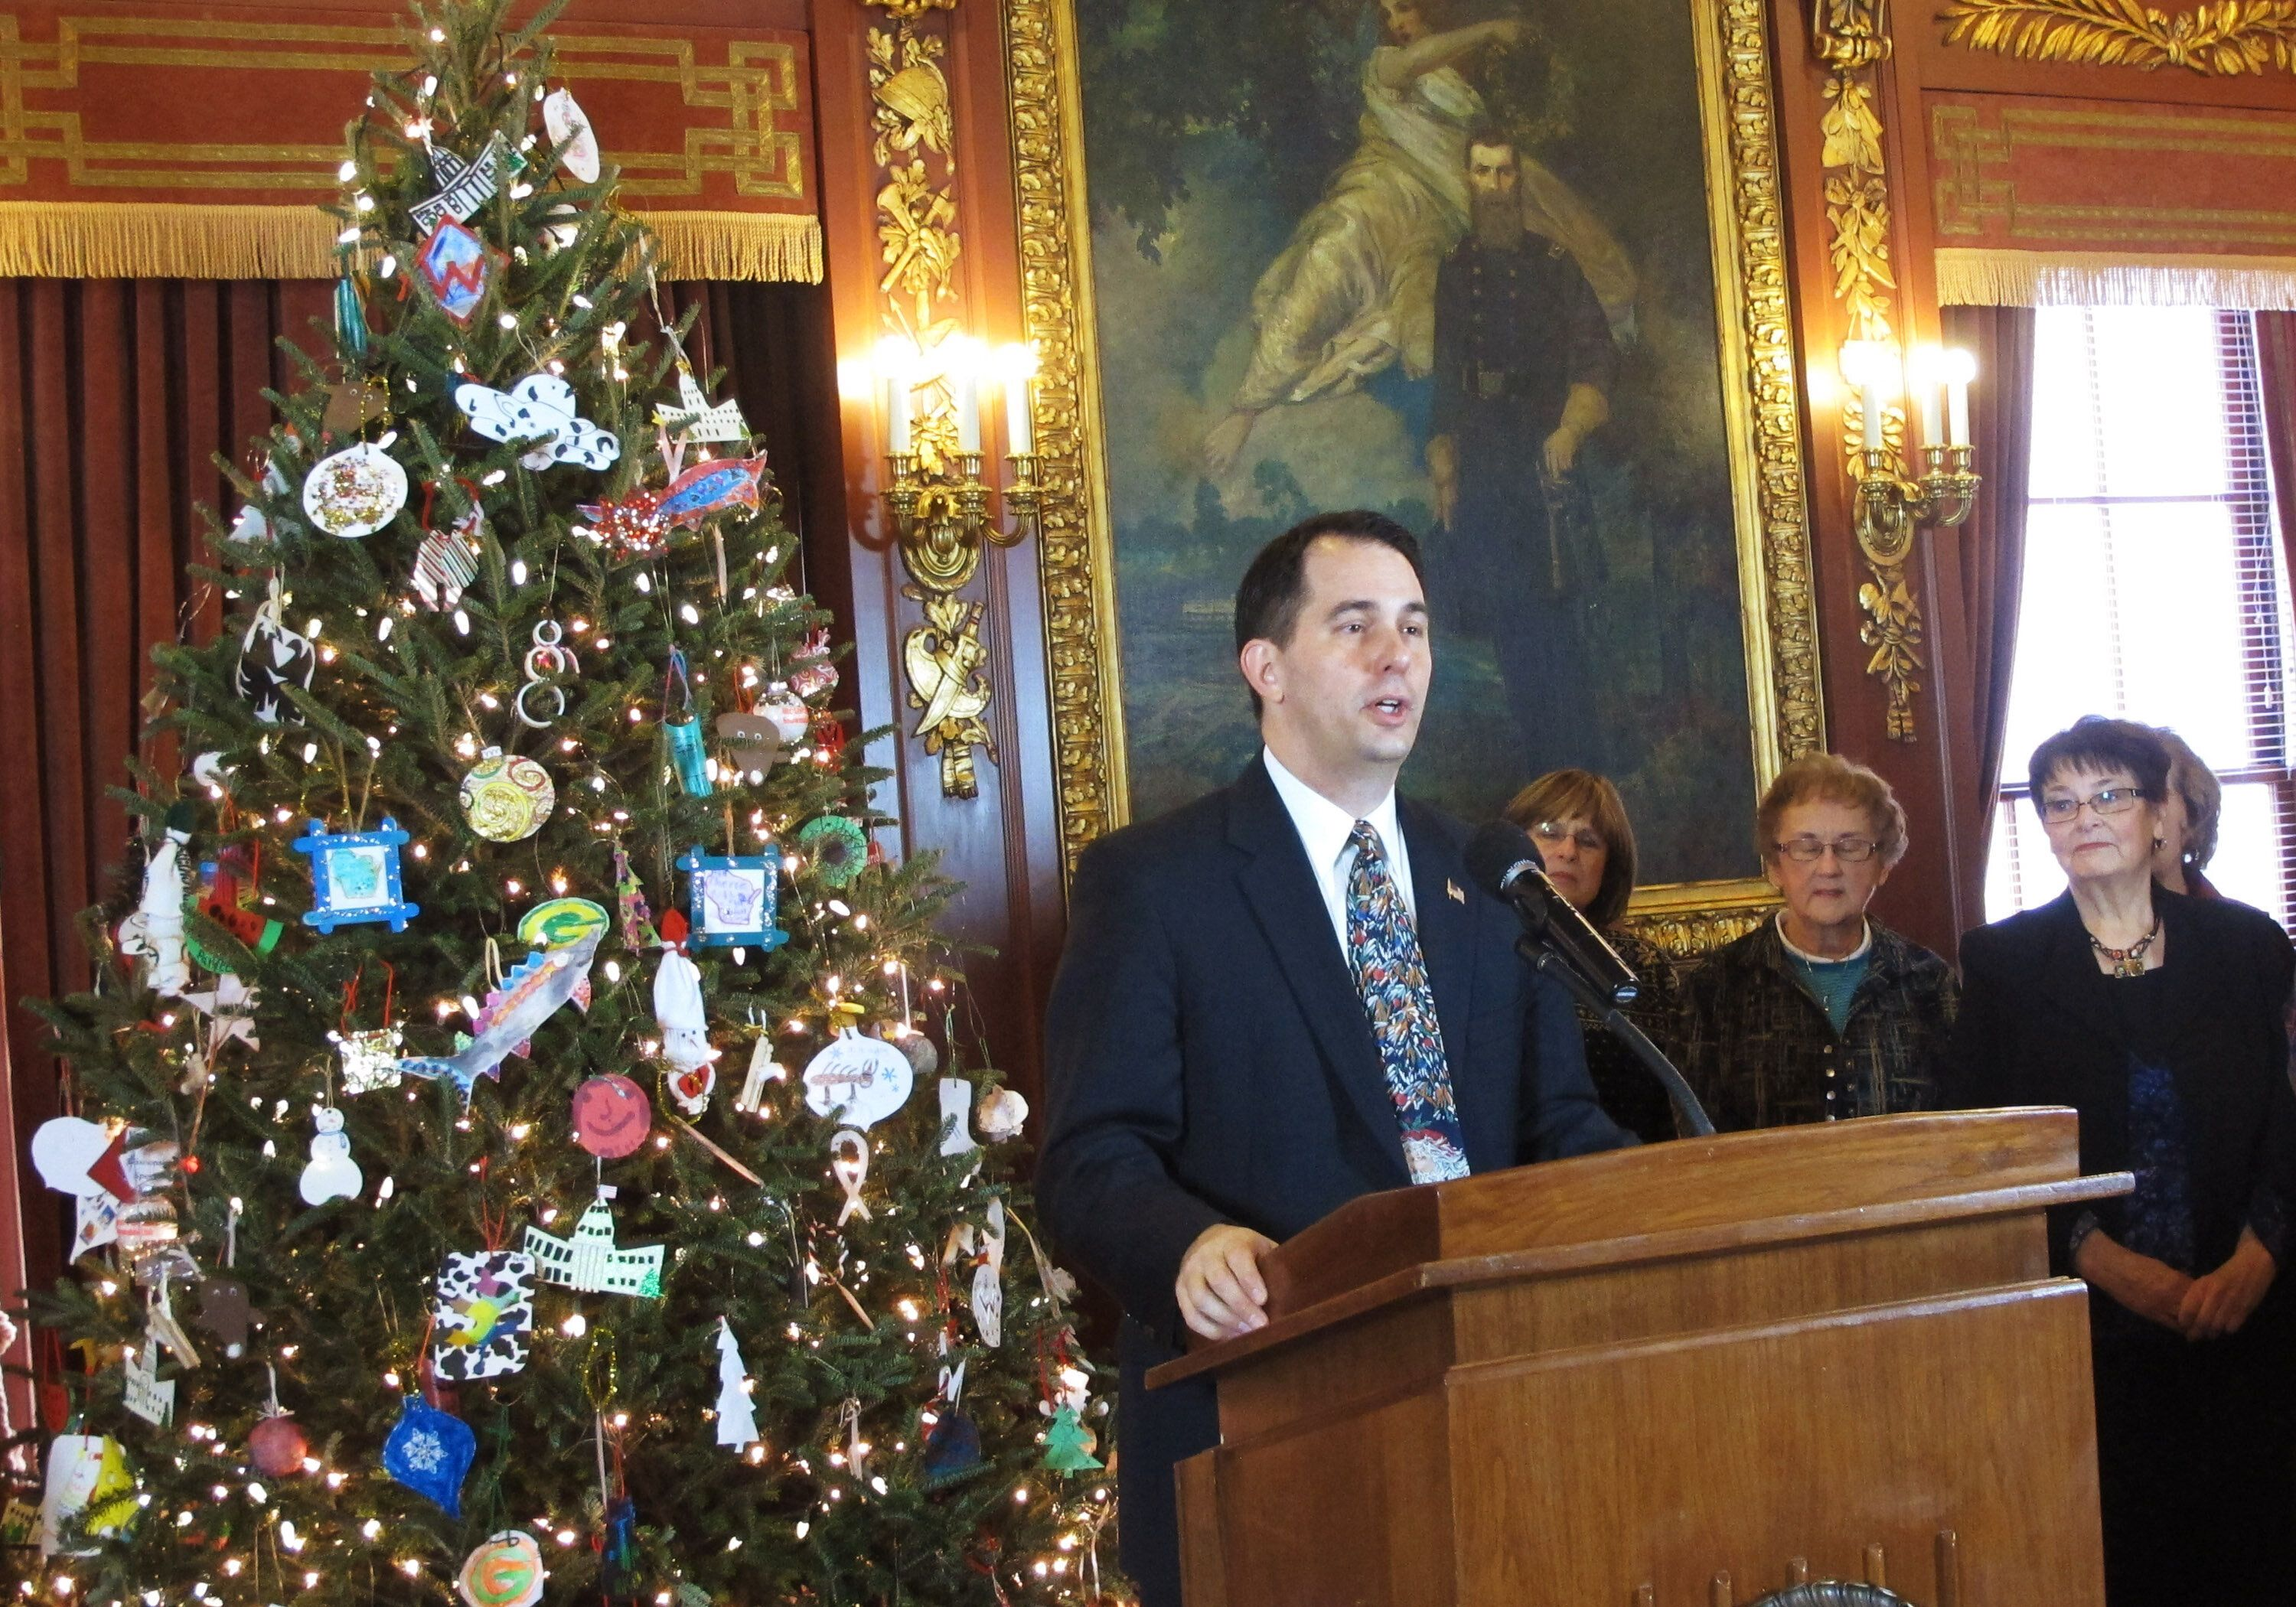 Scott Walker's War On Christmas Freakout Over Holiday Tree Backfires On Twitter